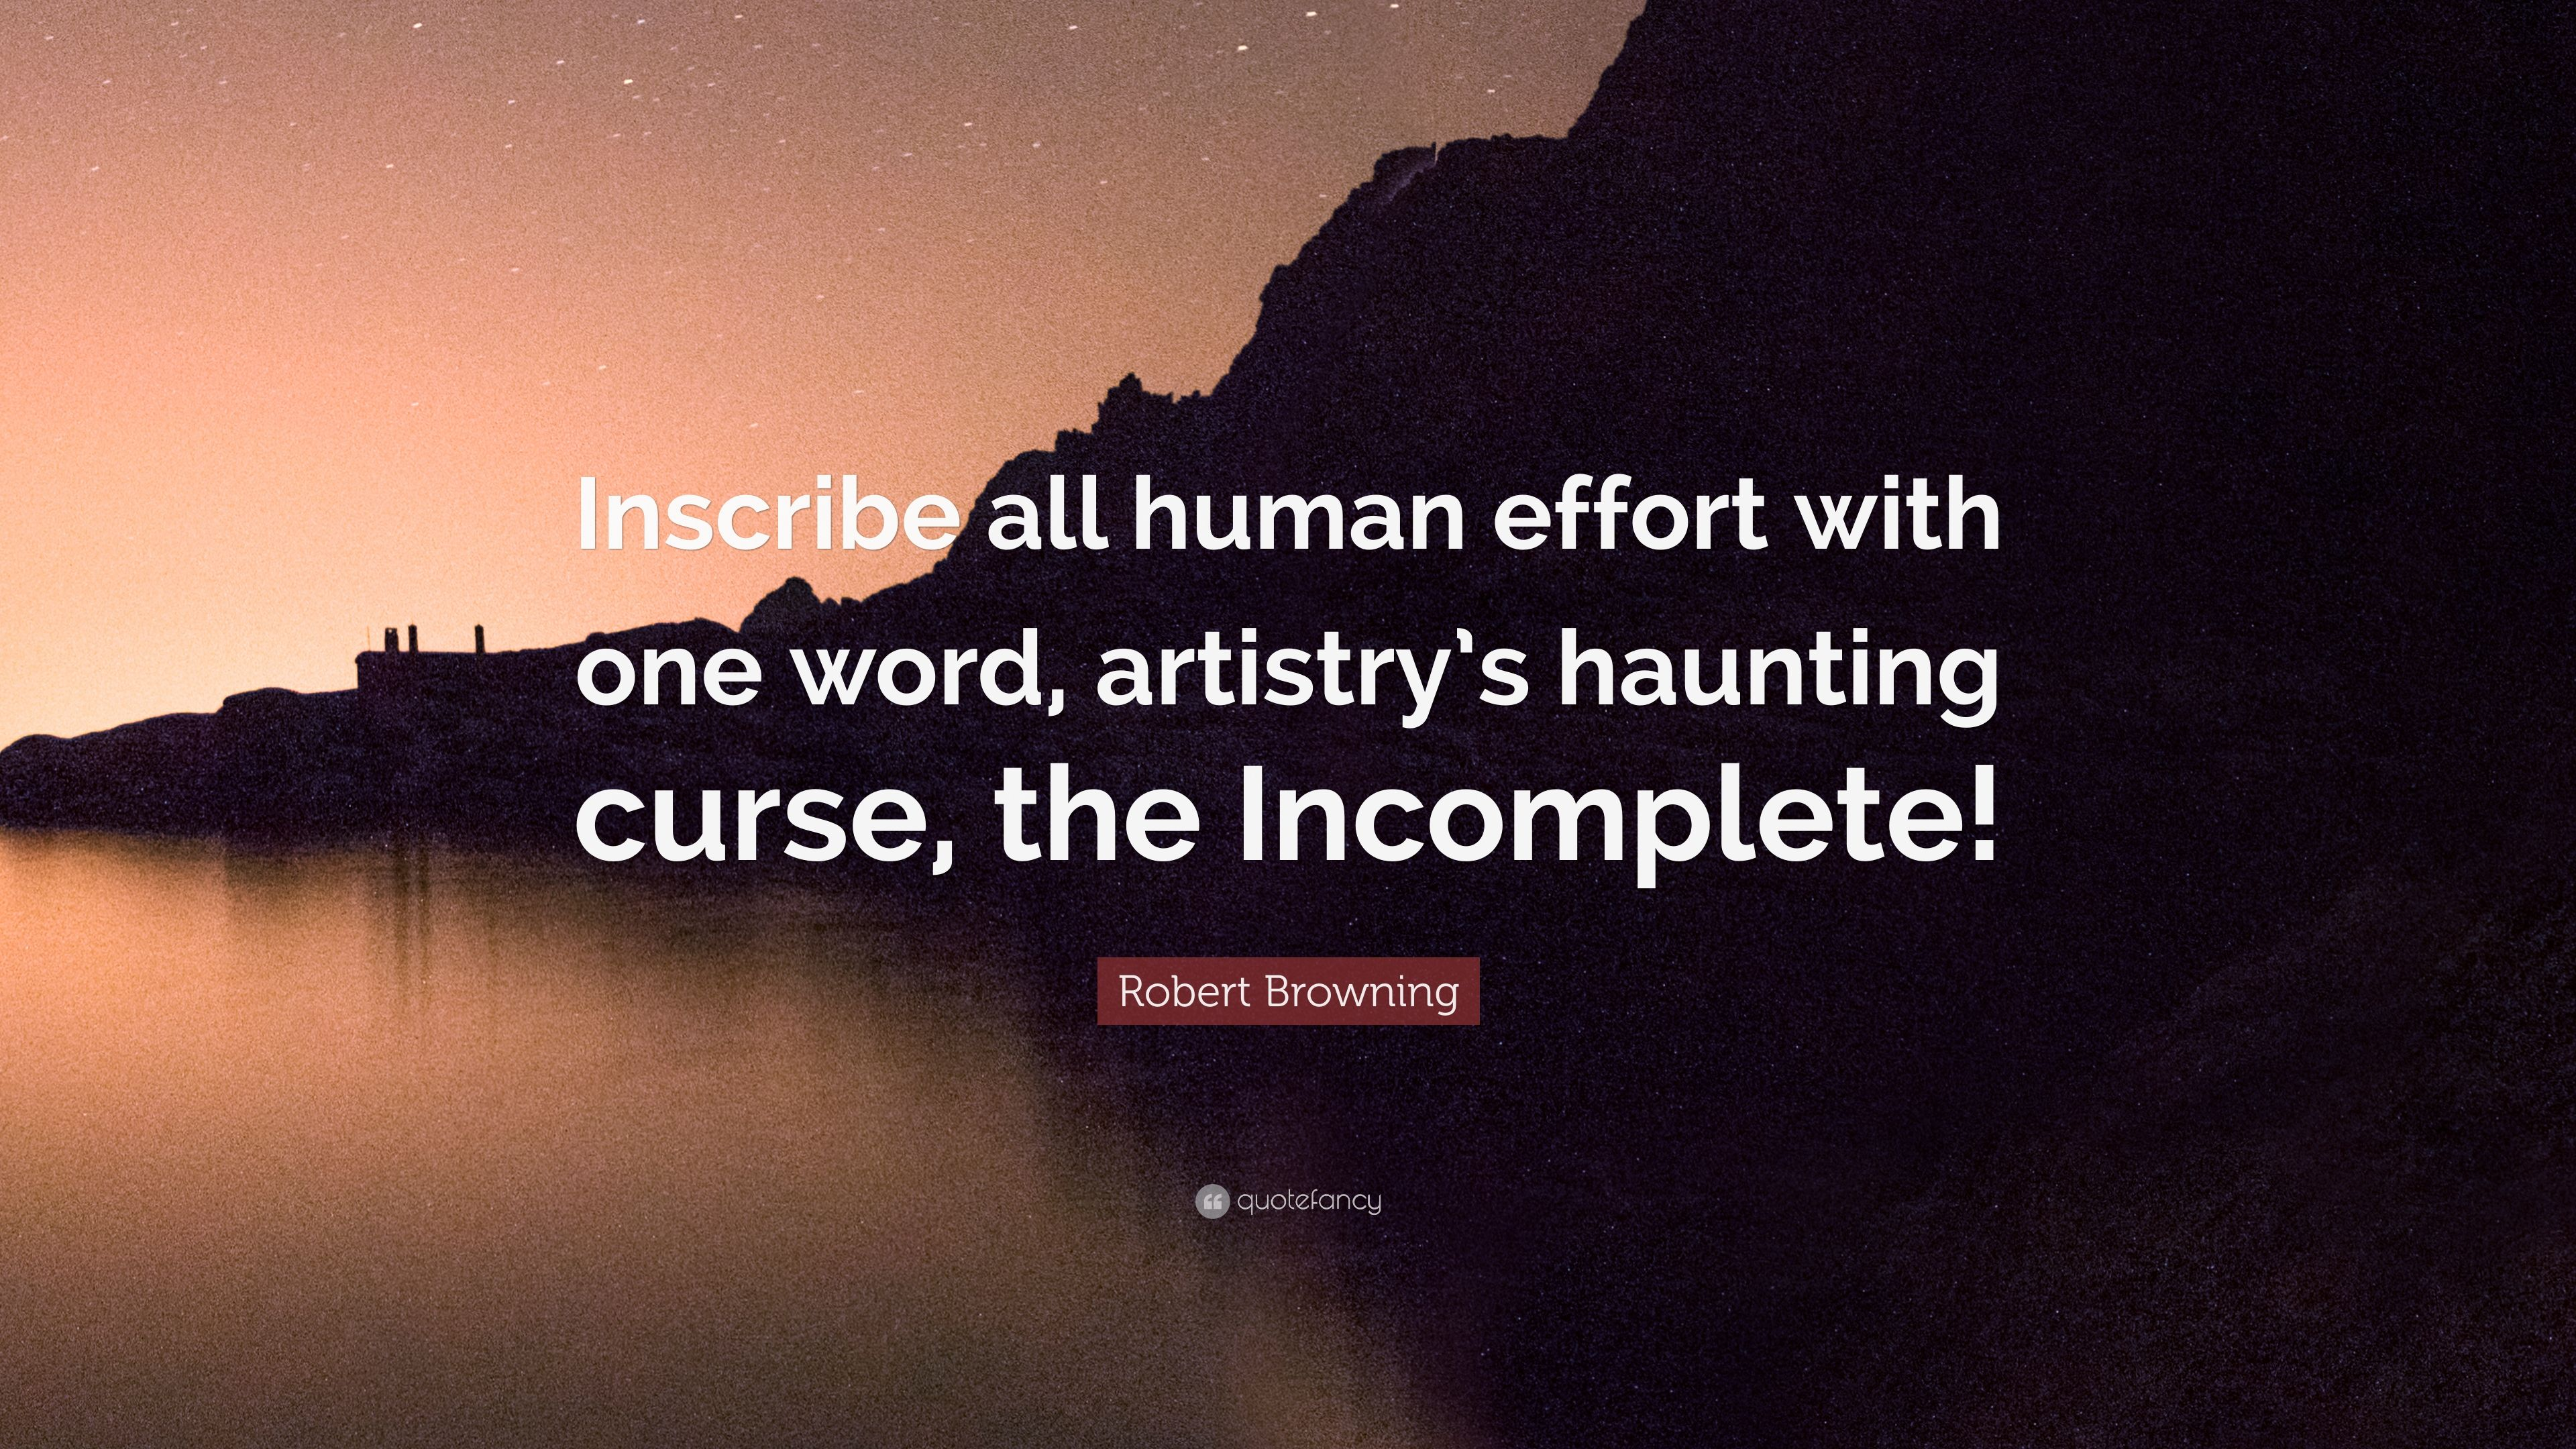 Robert Browning Quote Inscribe All Human Effort With One Word Artistrys Haunting Curse